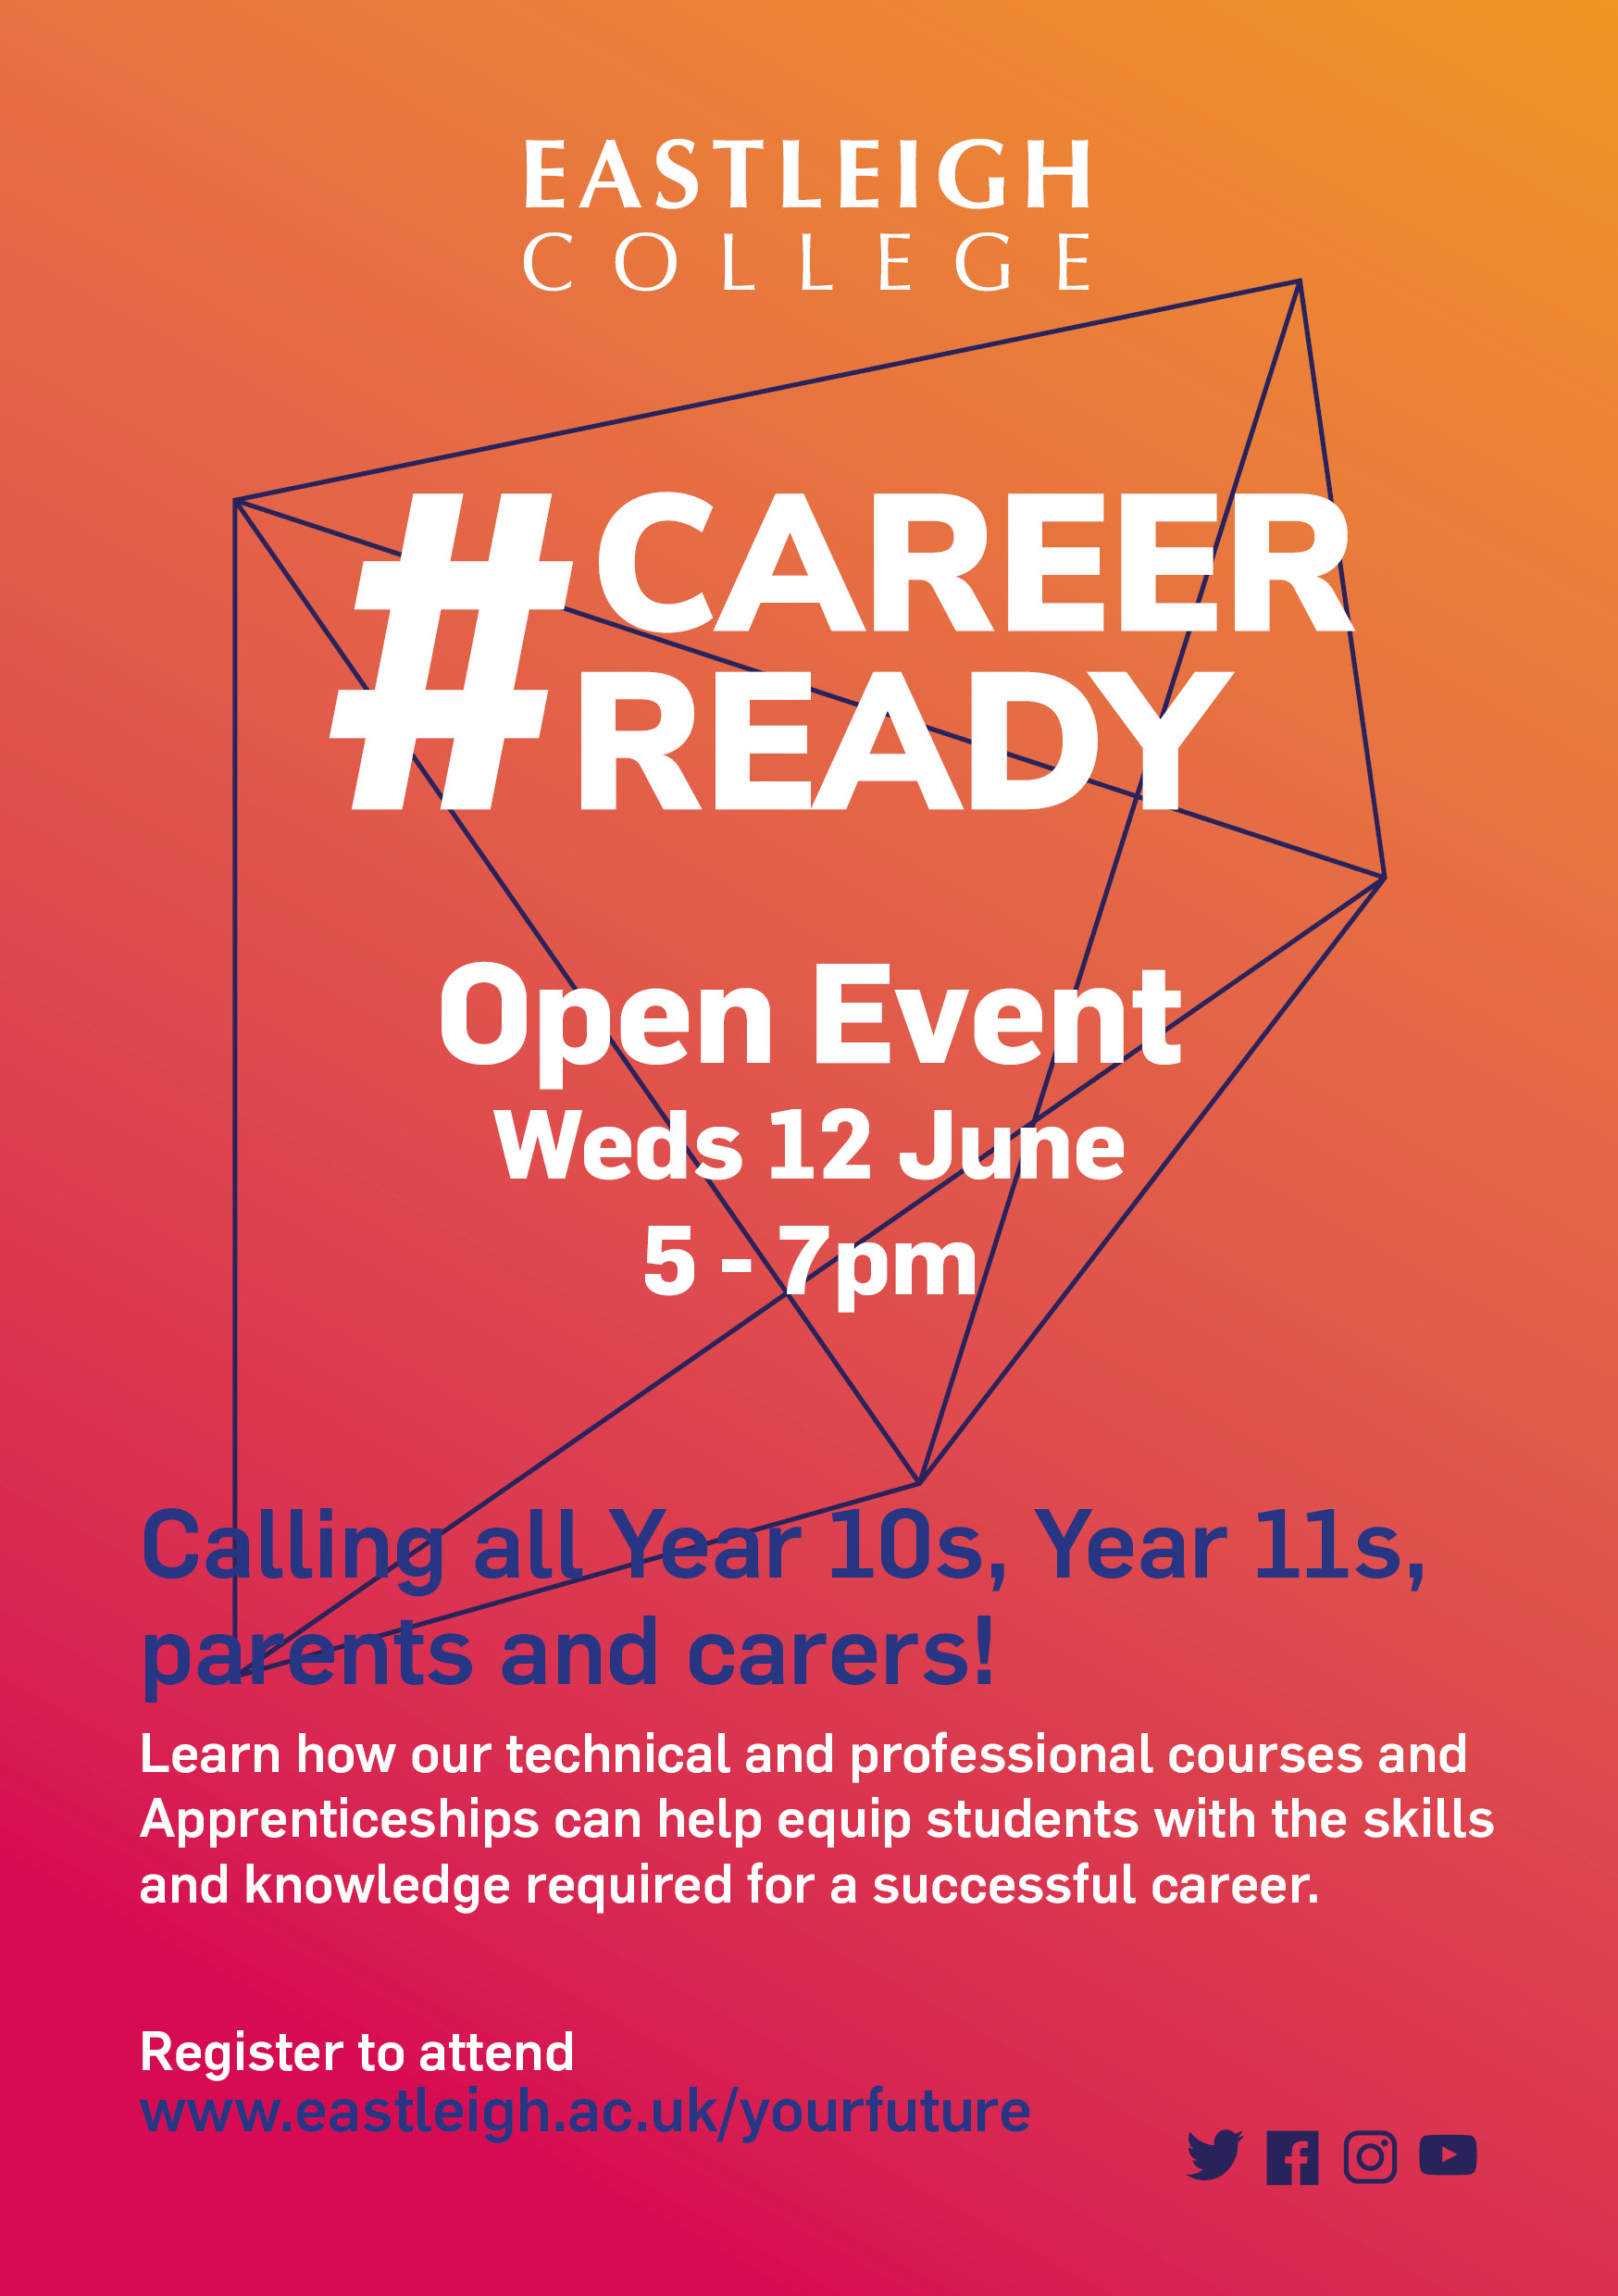 Open Event, Weds 12 June, 5-7pm · Eastleigh College